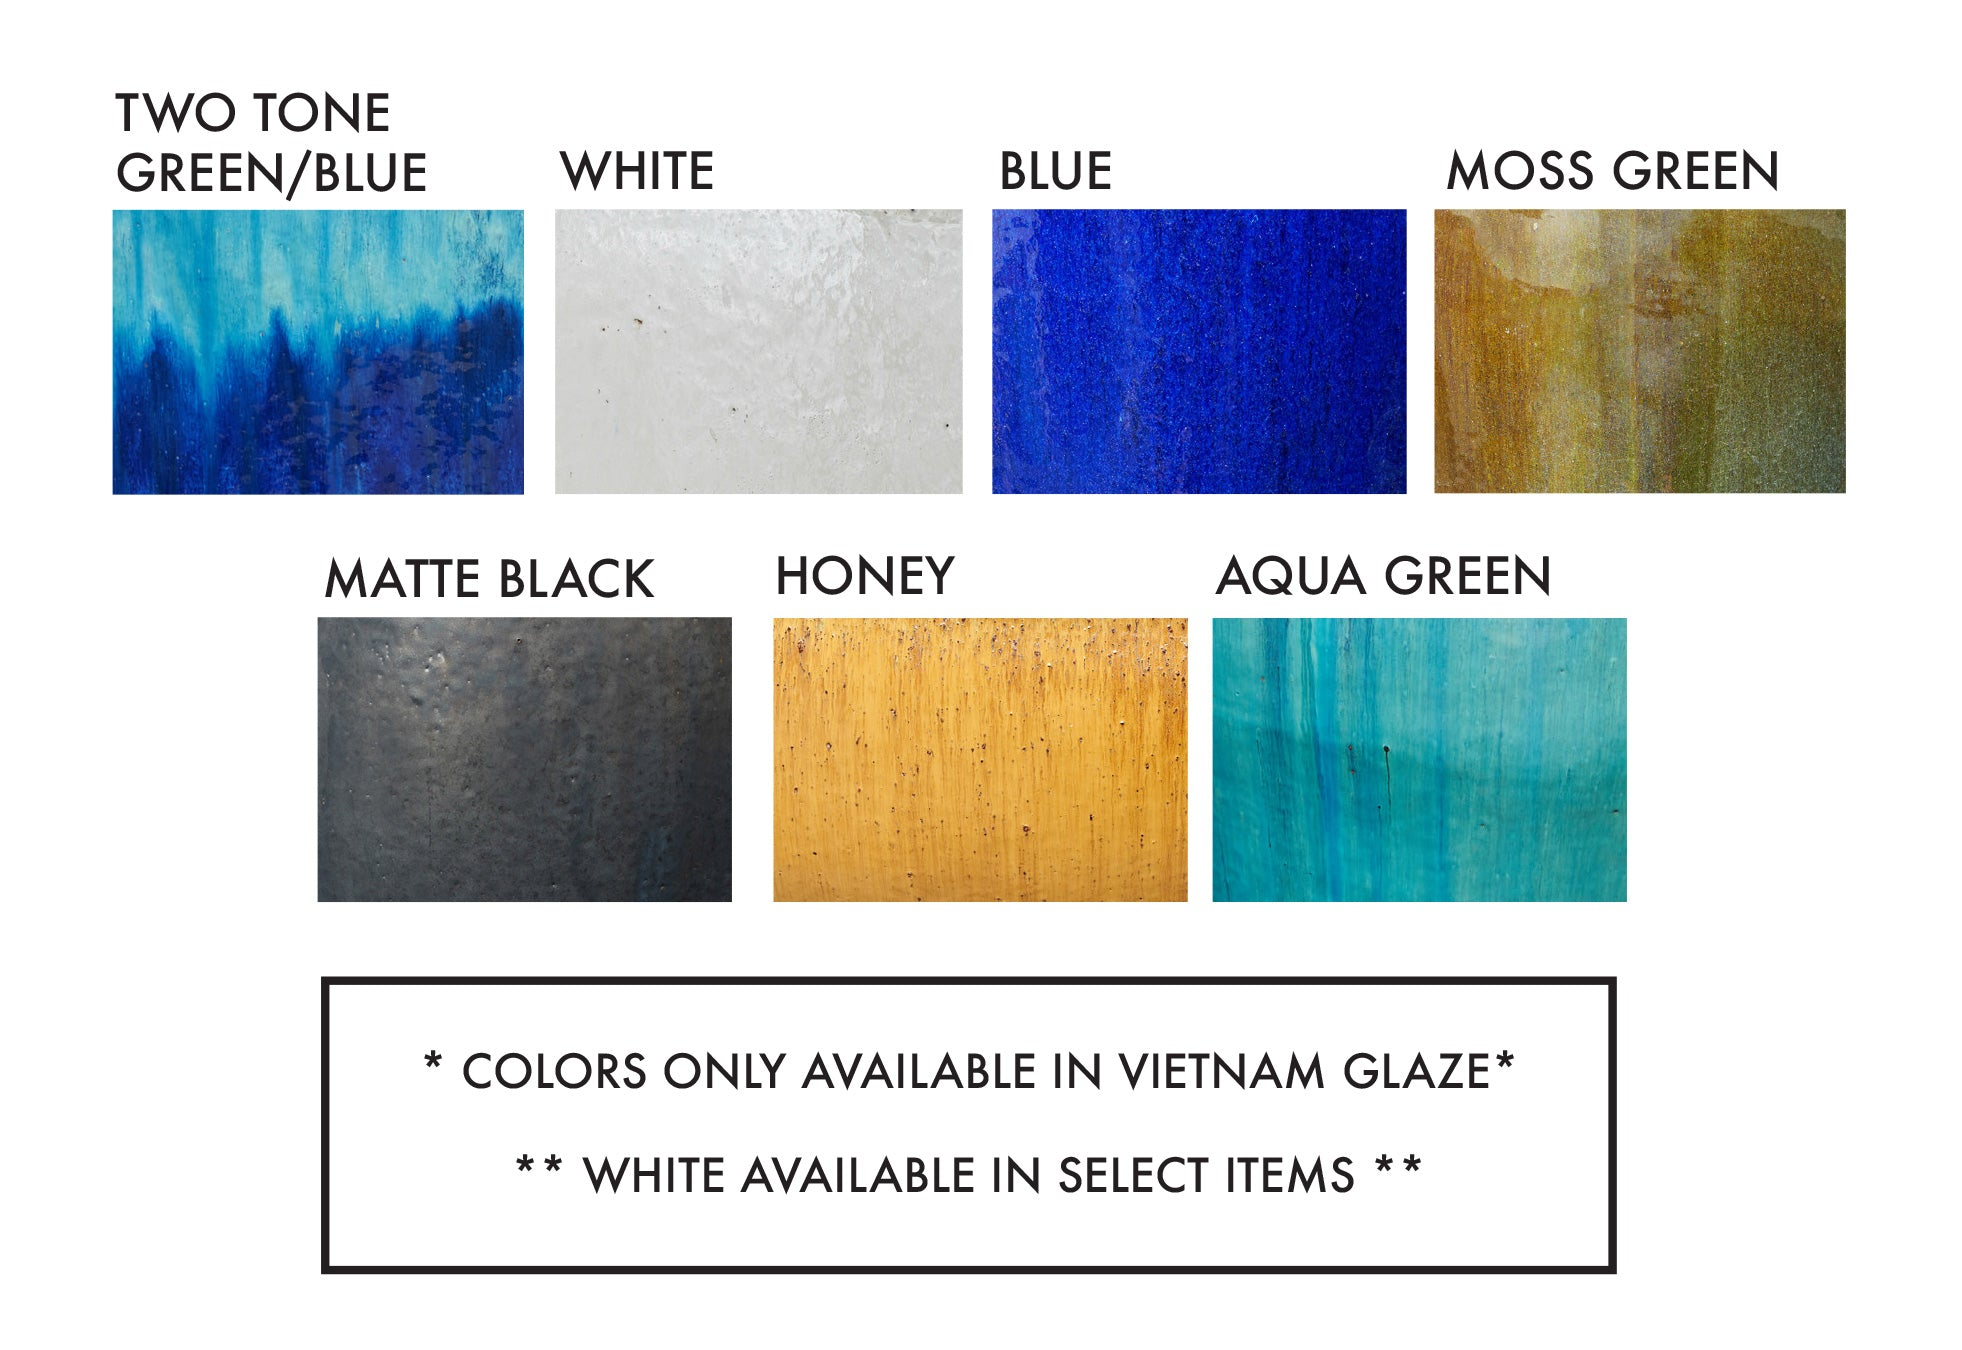 Vietnam Glaze Color Chart